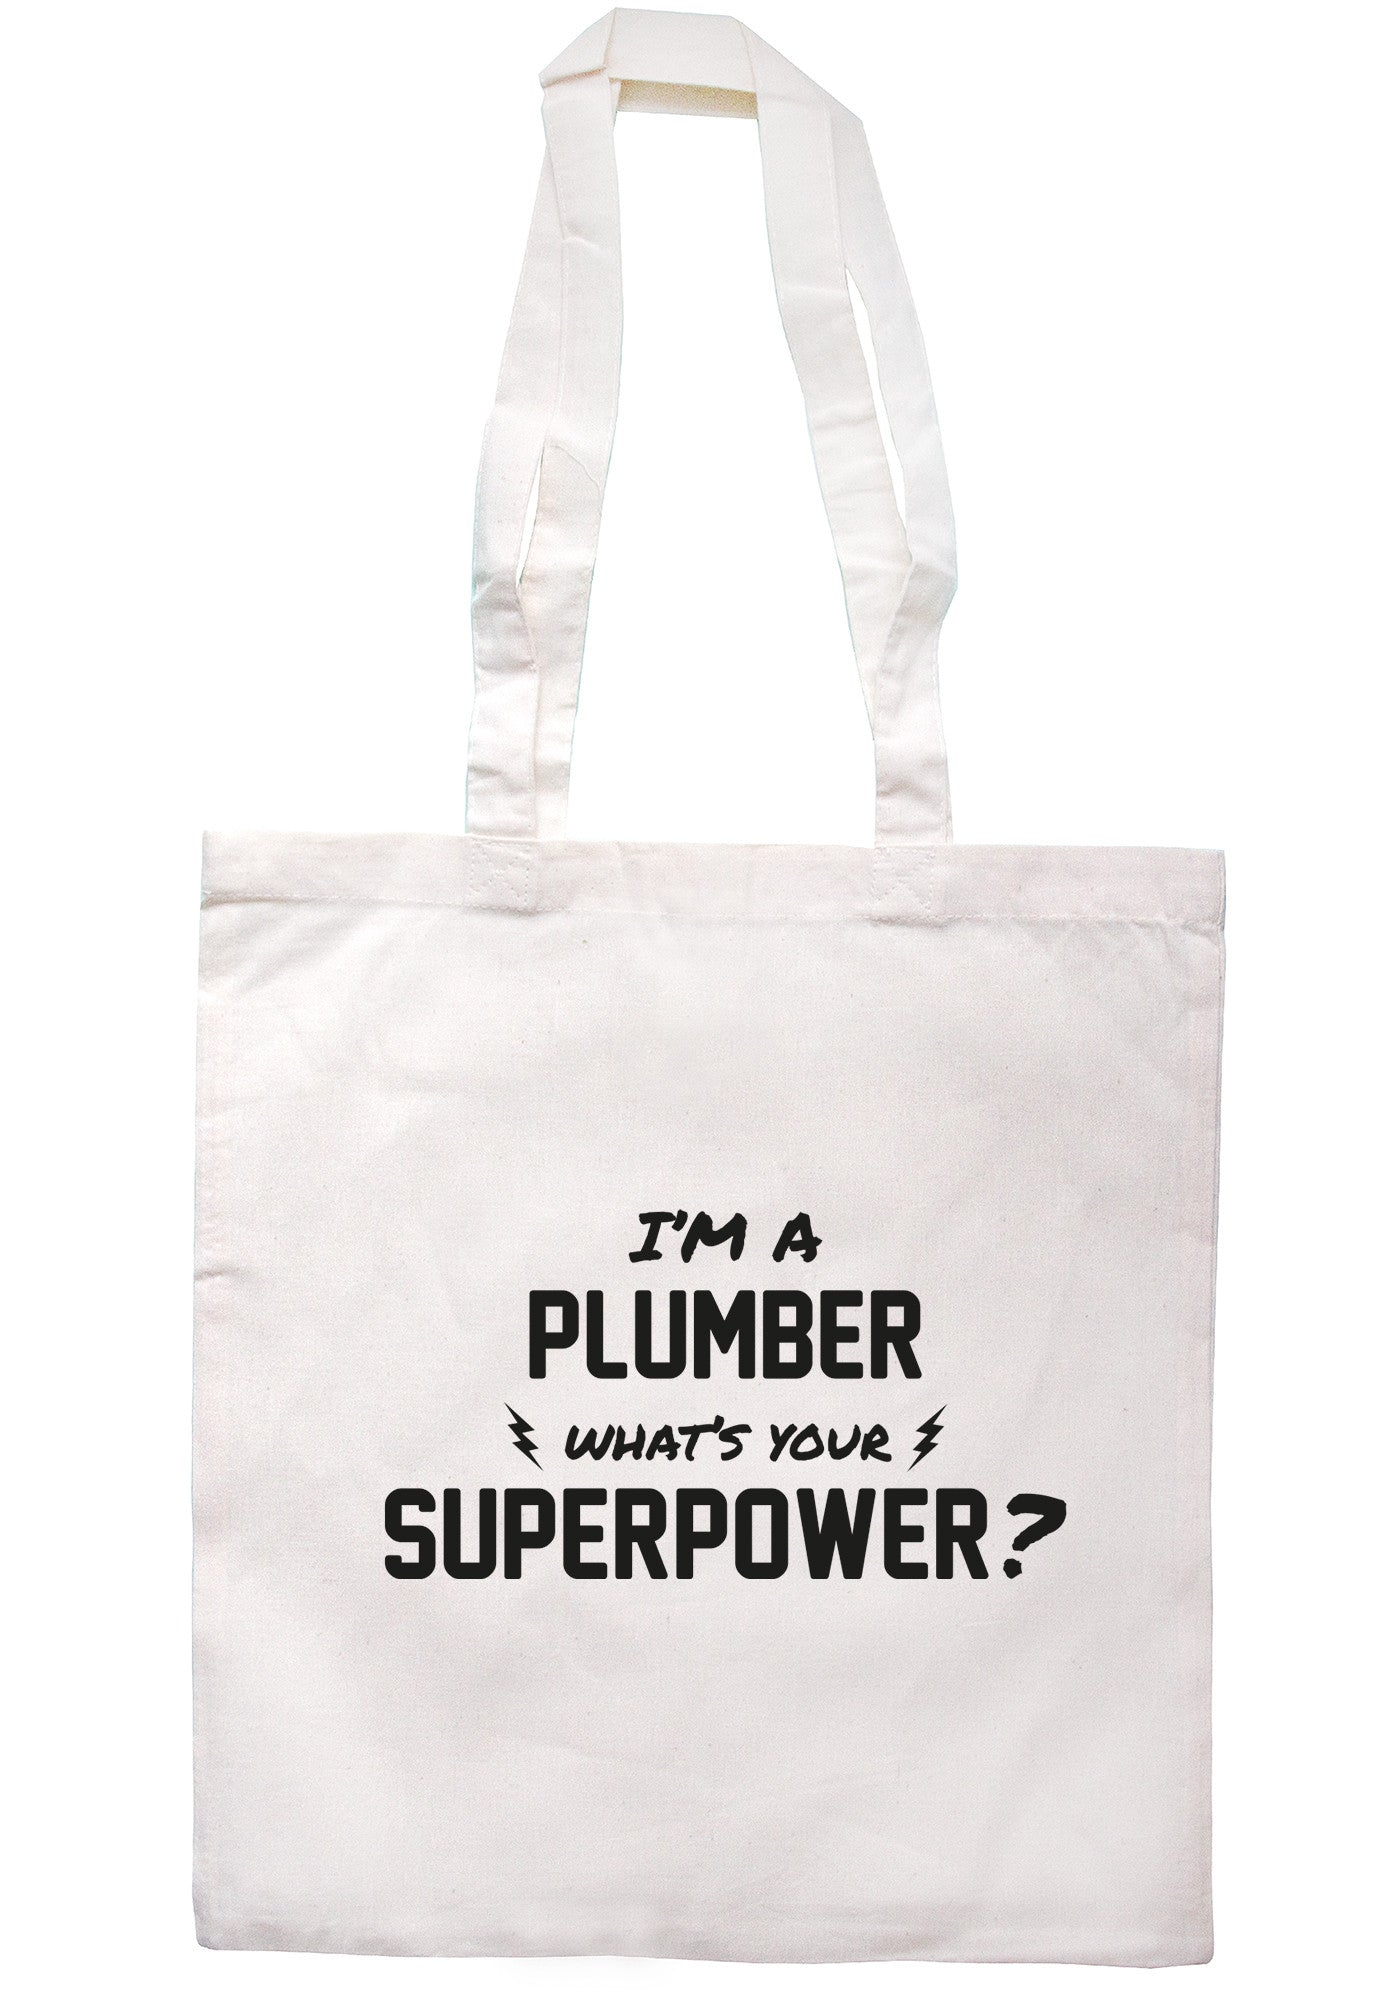 I'm A Plumber What's Your Superpower? Tote Bag TB0530 - Illustrated Identity Ltd.